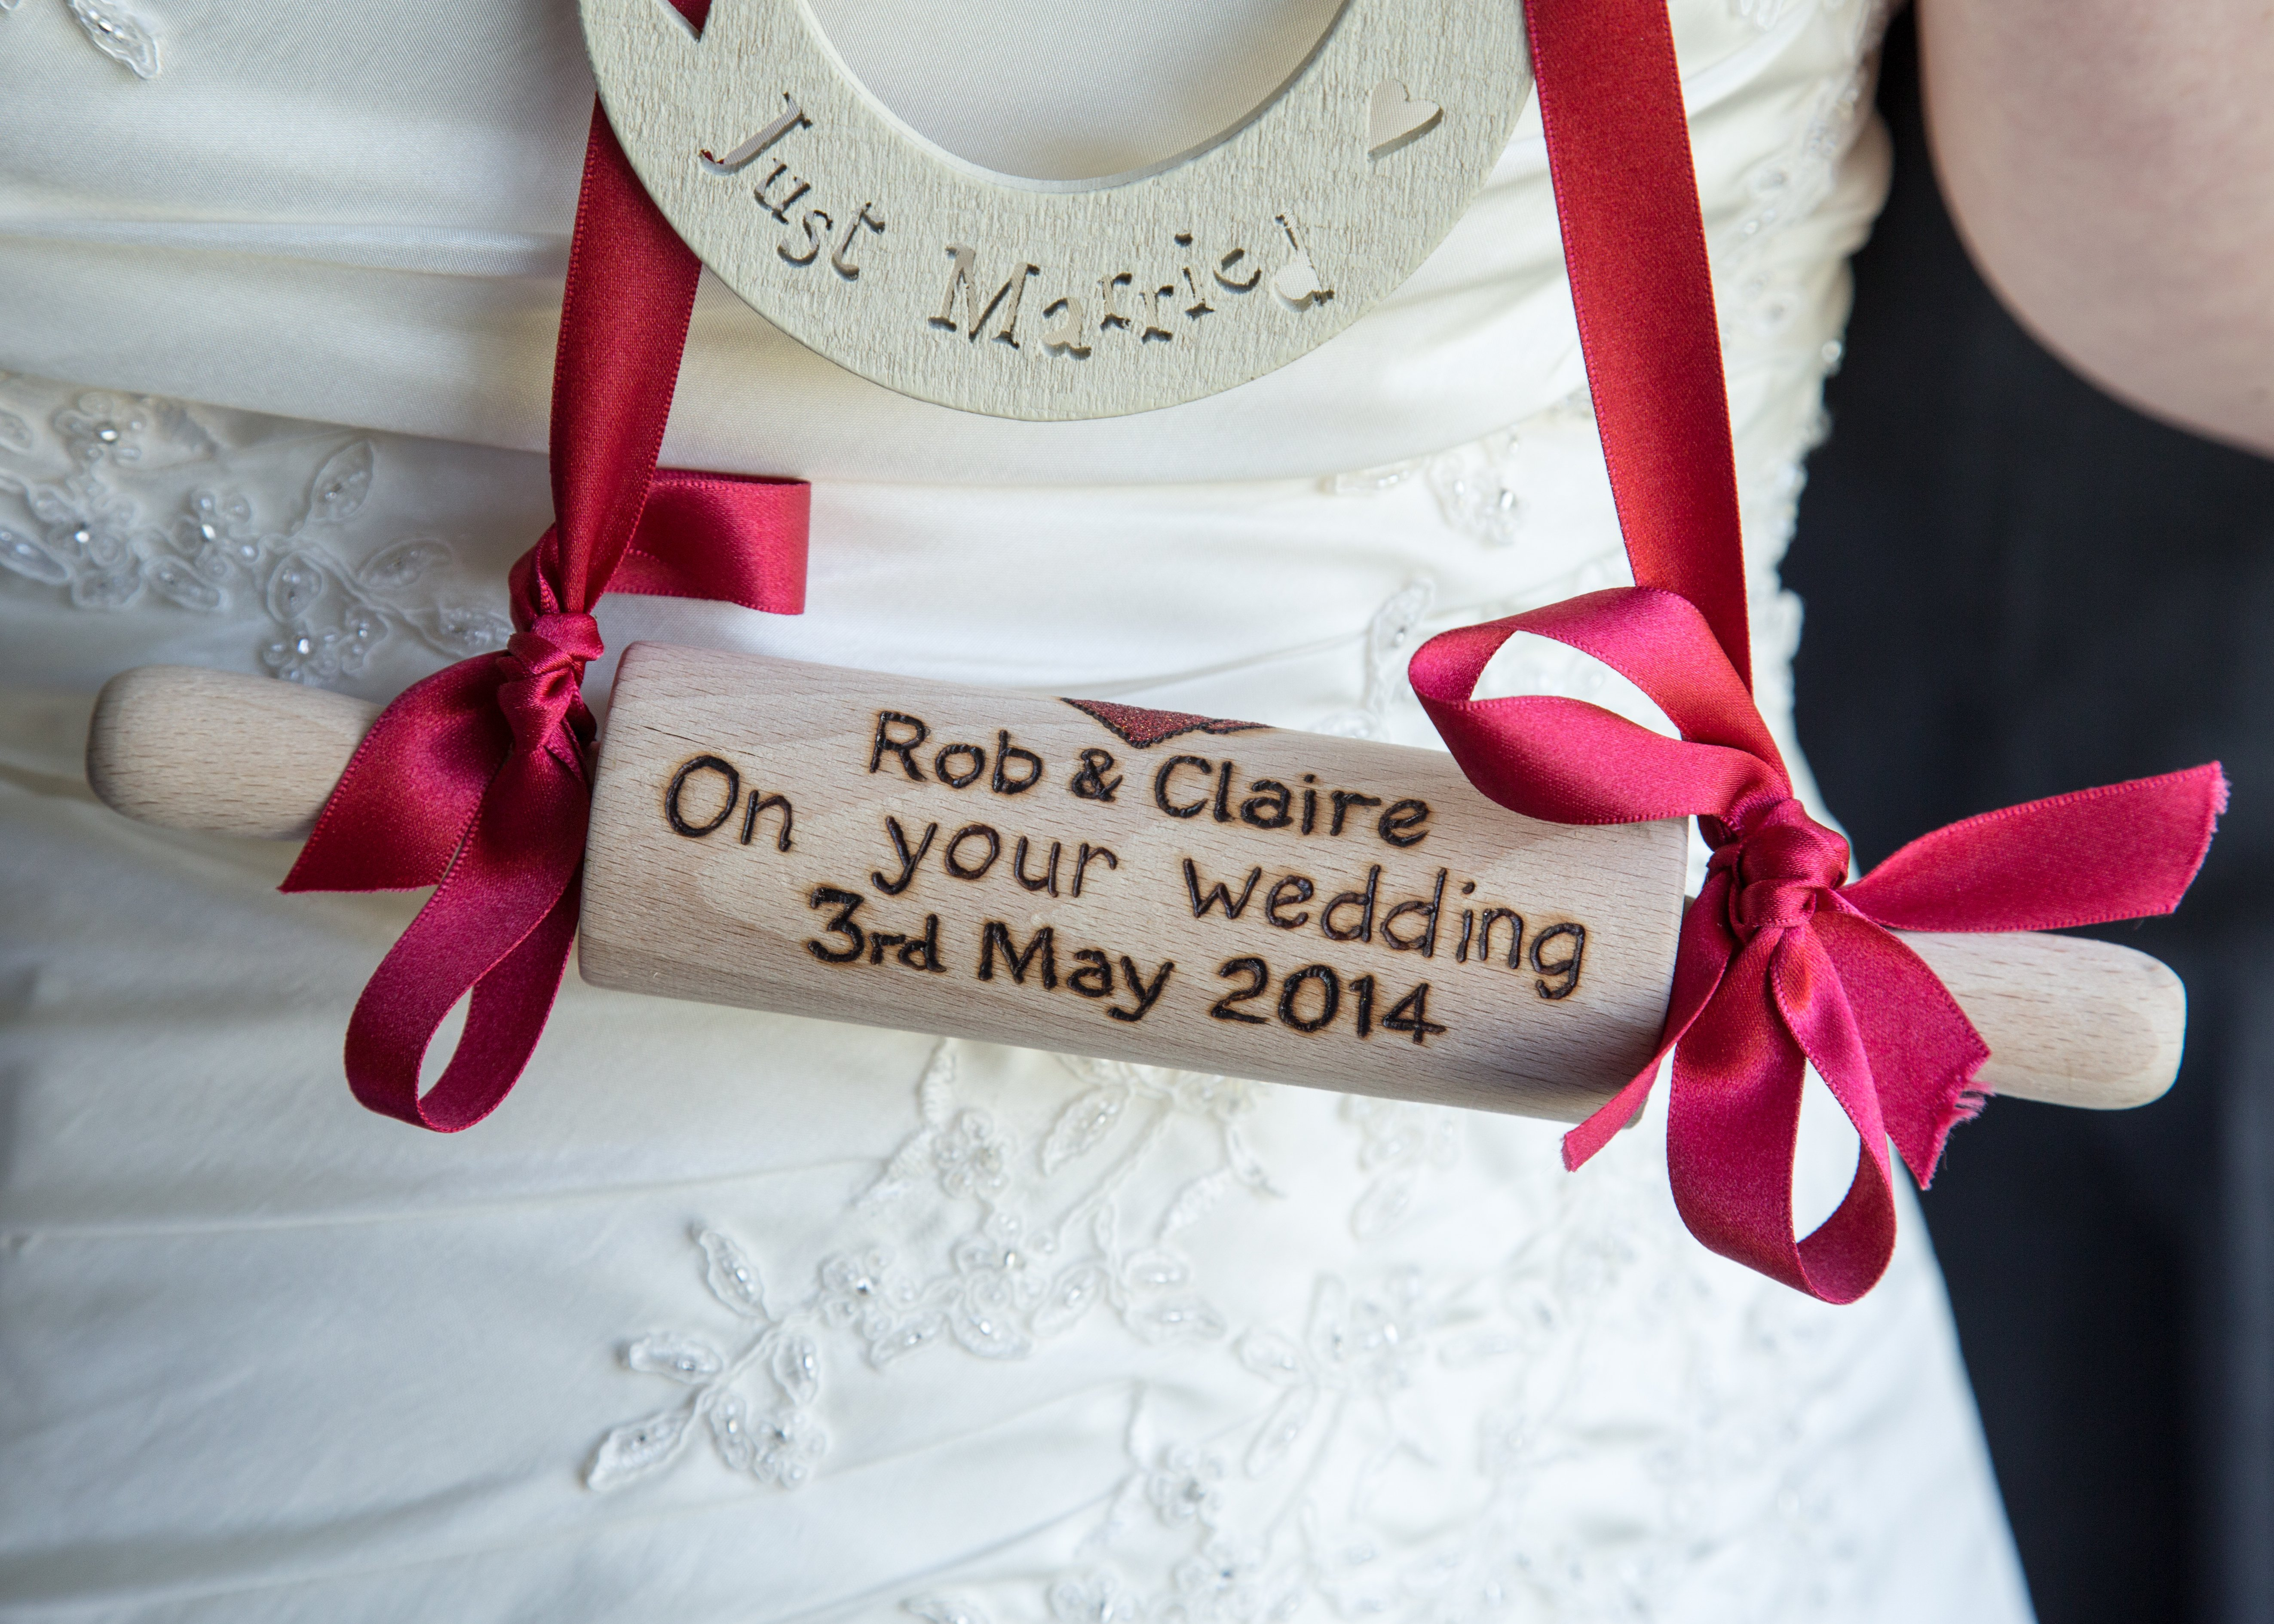 A white horseshoe and scroll on a red ribbon, for the 2004 wedding of Rob and Claire